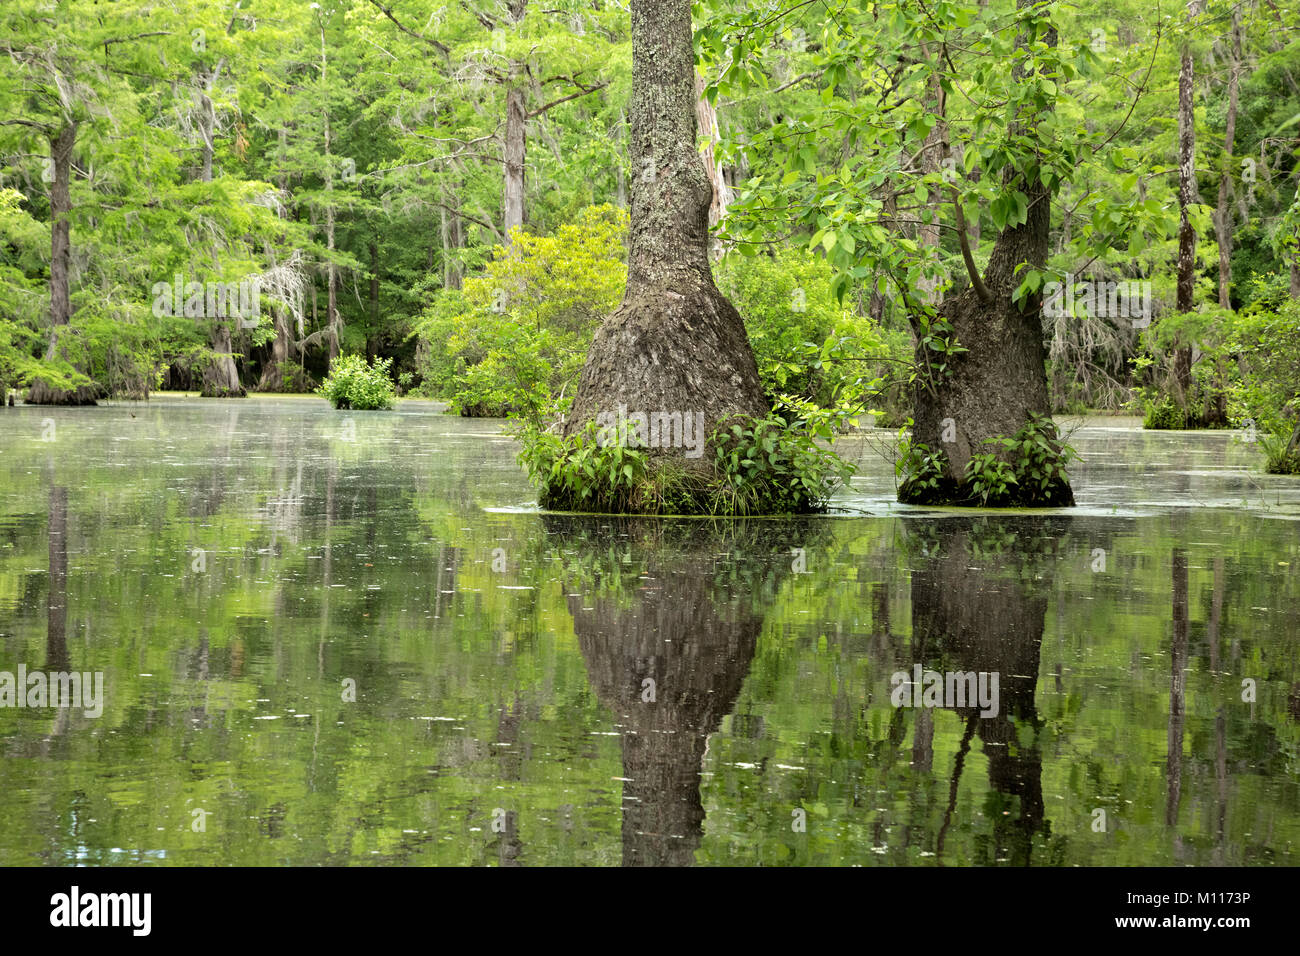 NC01453--00...NORTH CAROLINA - Graceful tupelo gum trees rising out of the cypress swamp and reflecting in the still - Stock Image